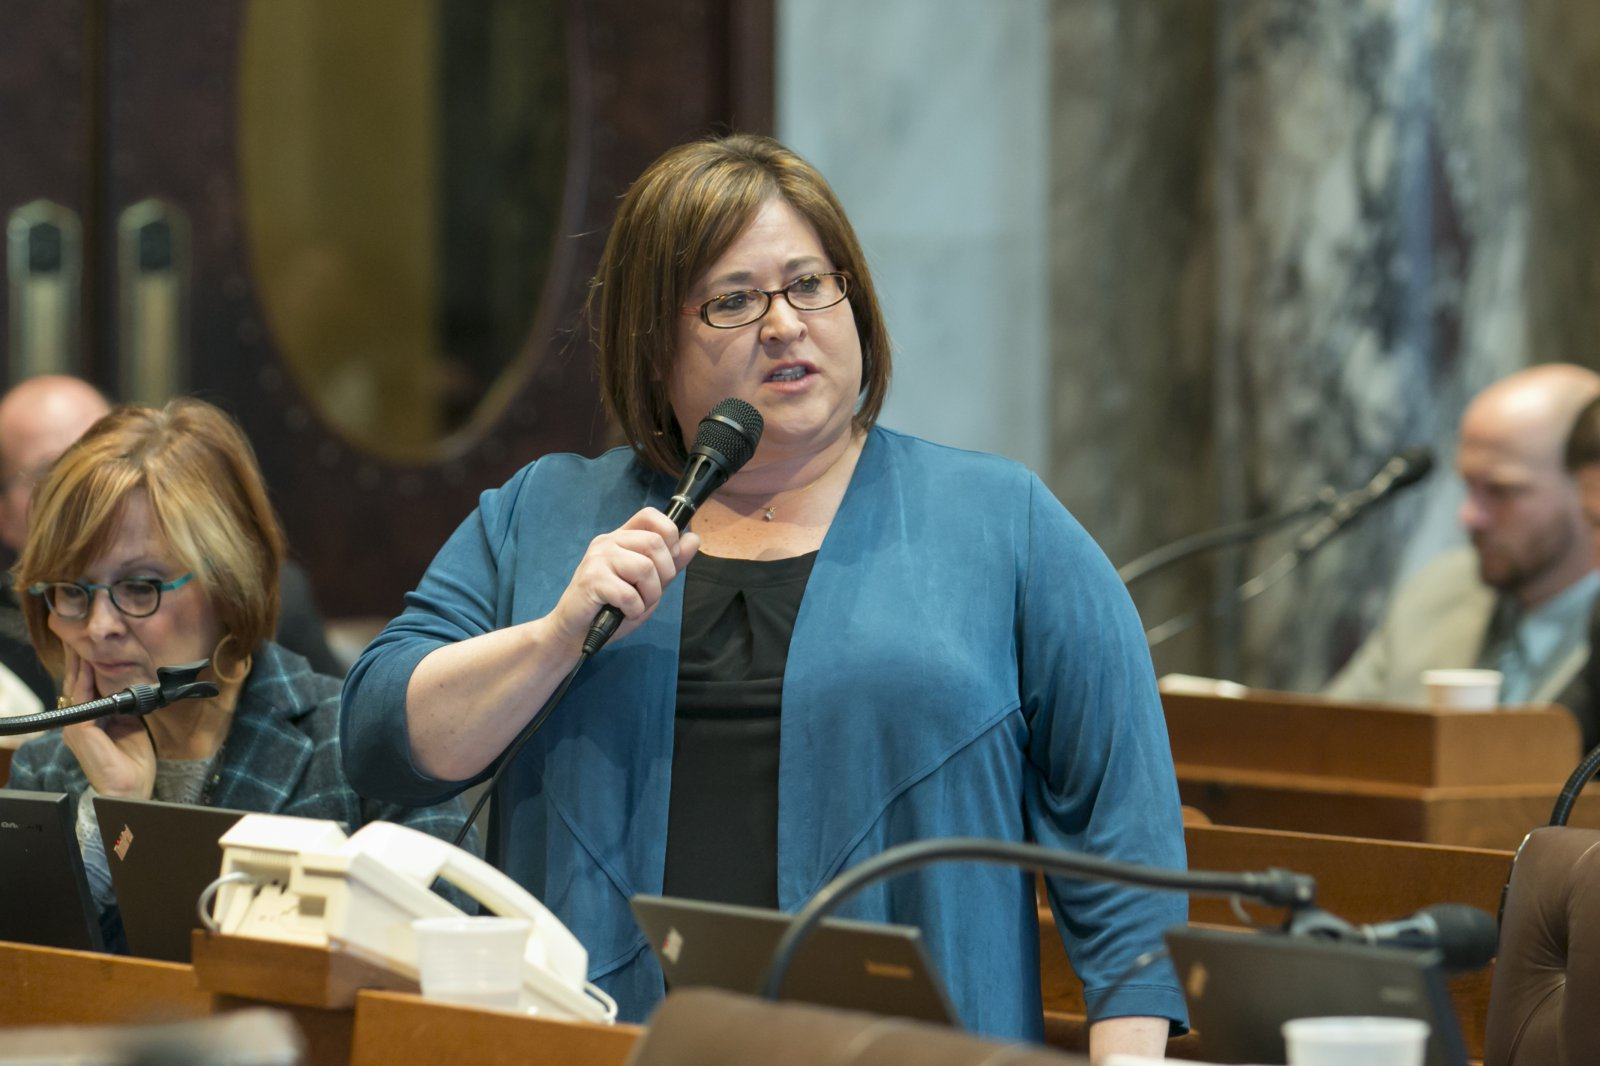 Representative Lisa Subeck Supports Vote by Mail Legislation